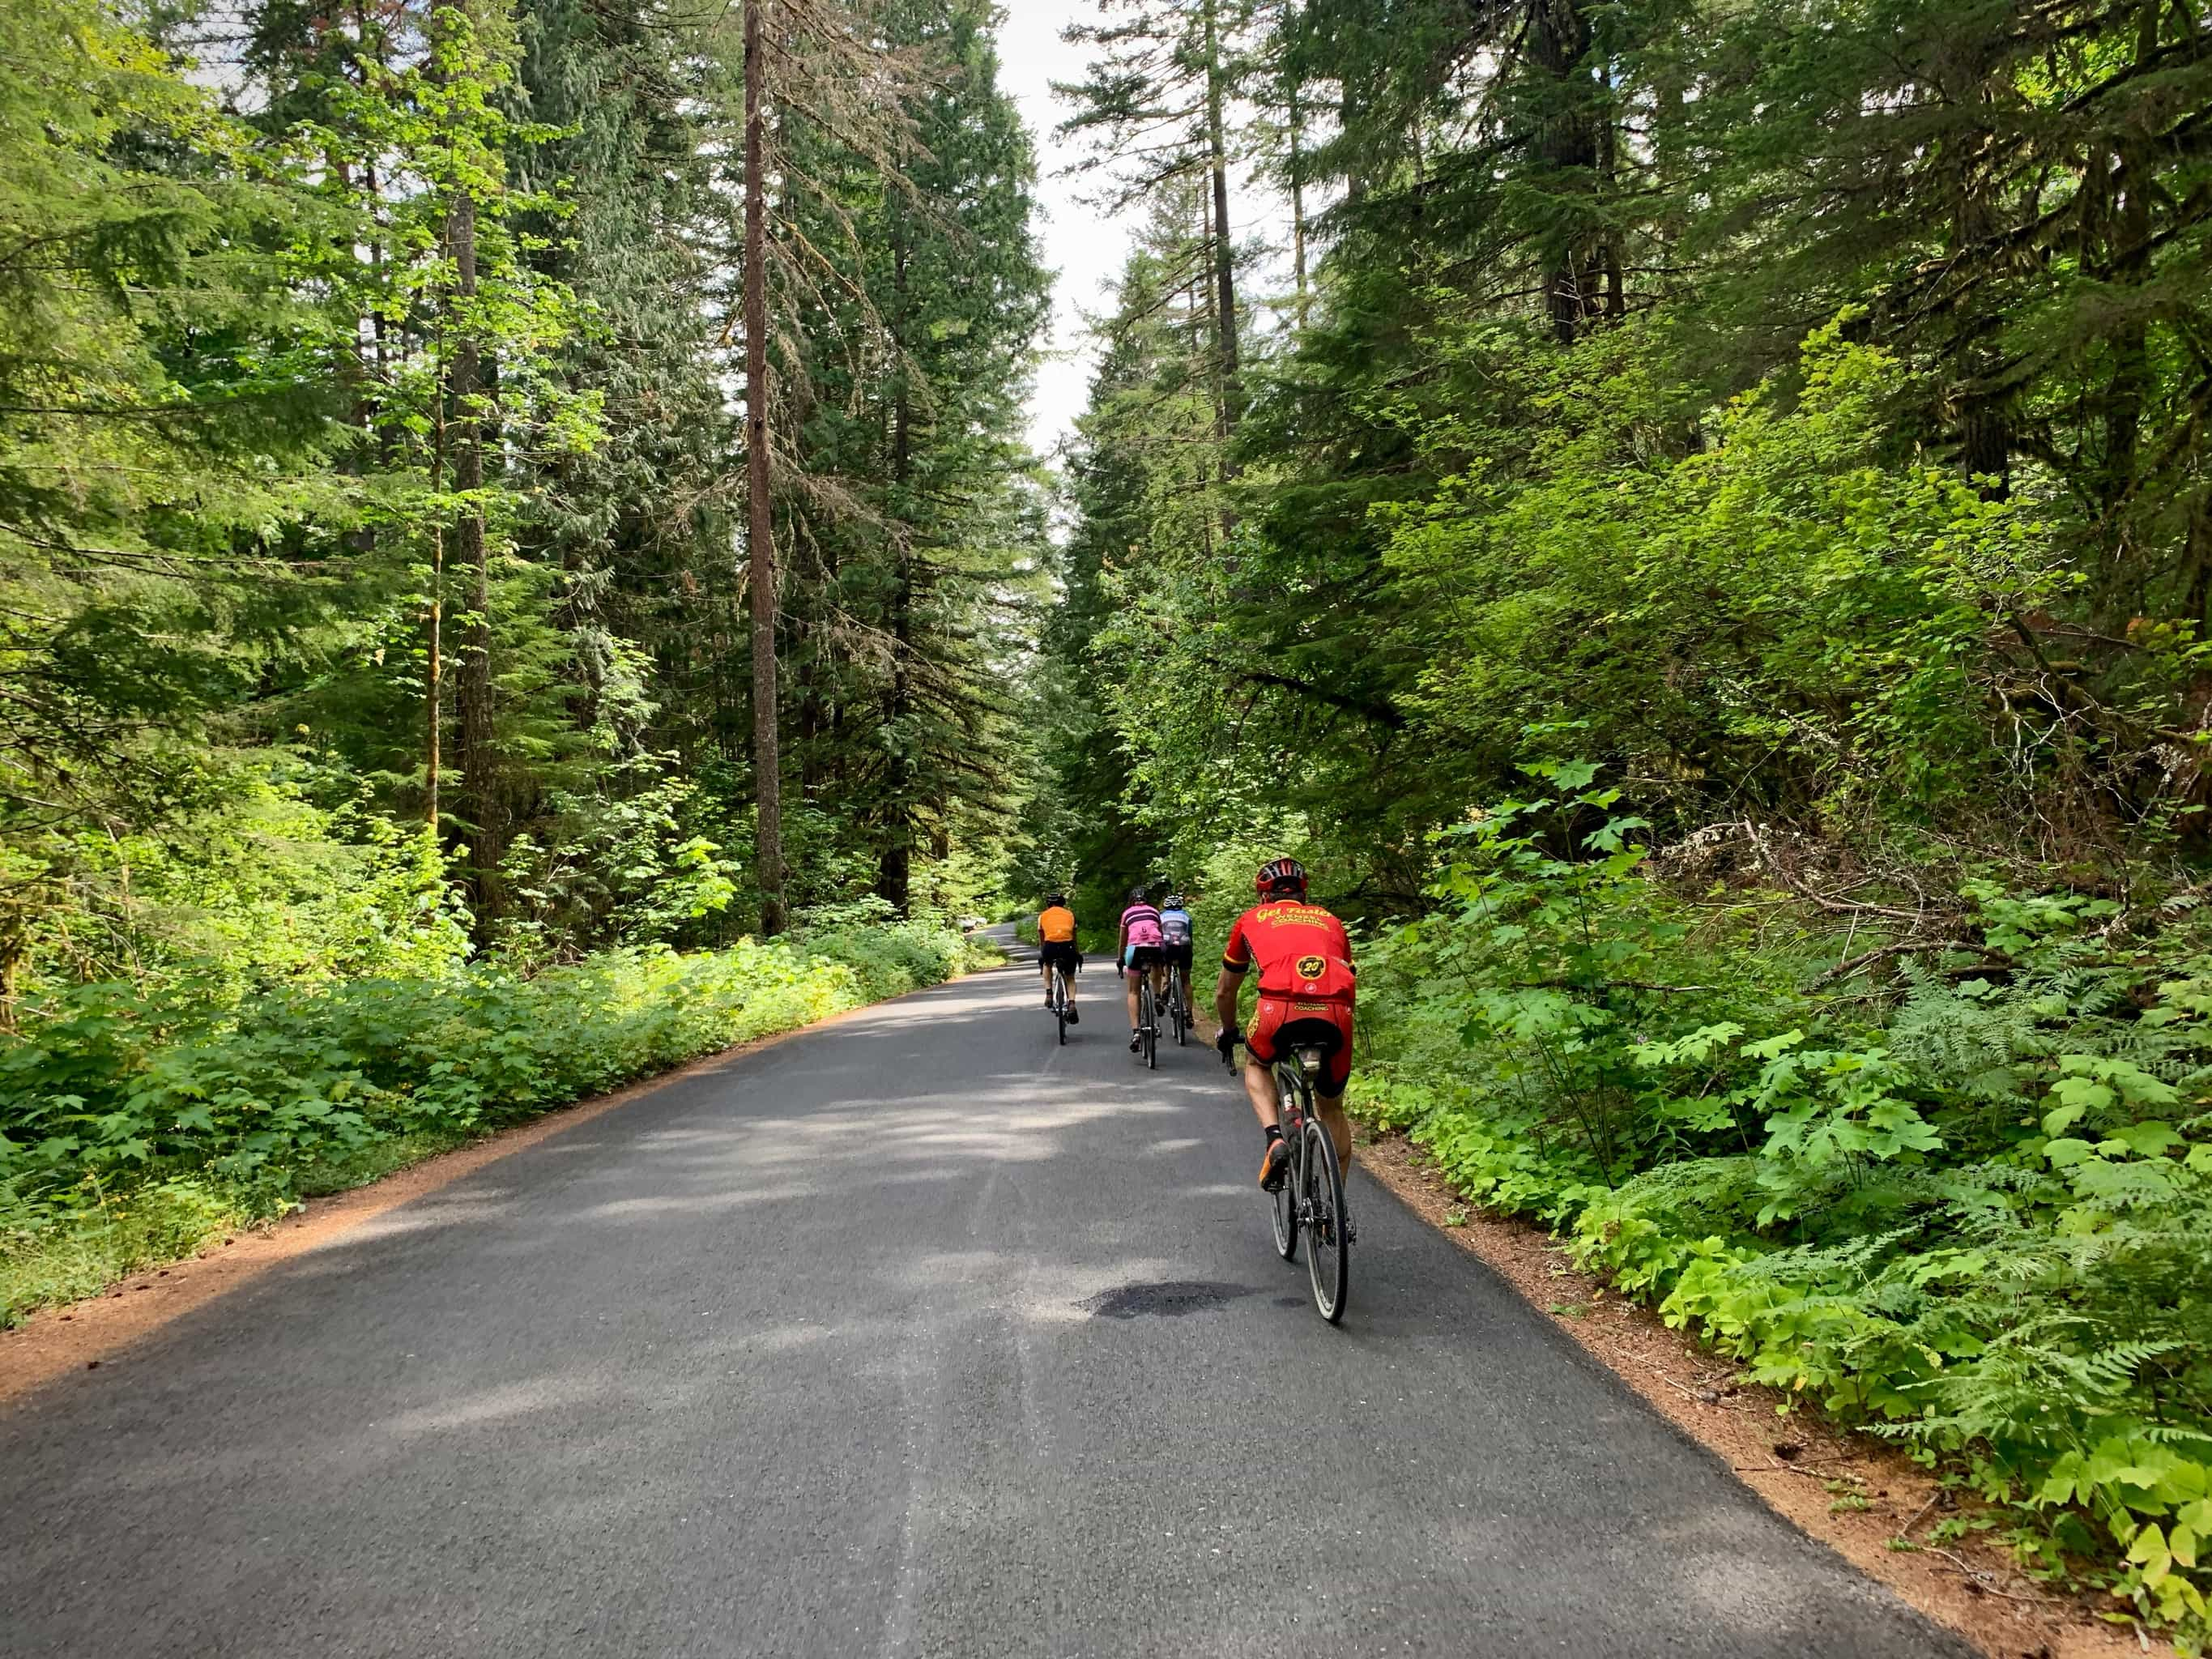 Cyclist on NF-65 near Panther Creek campground near Stabler, Washington.